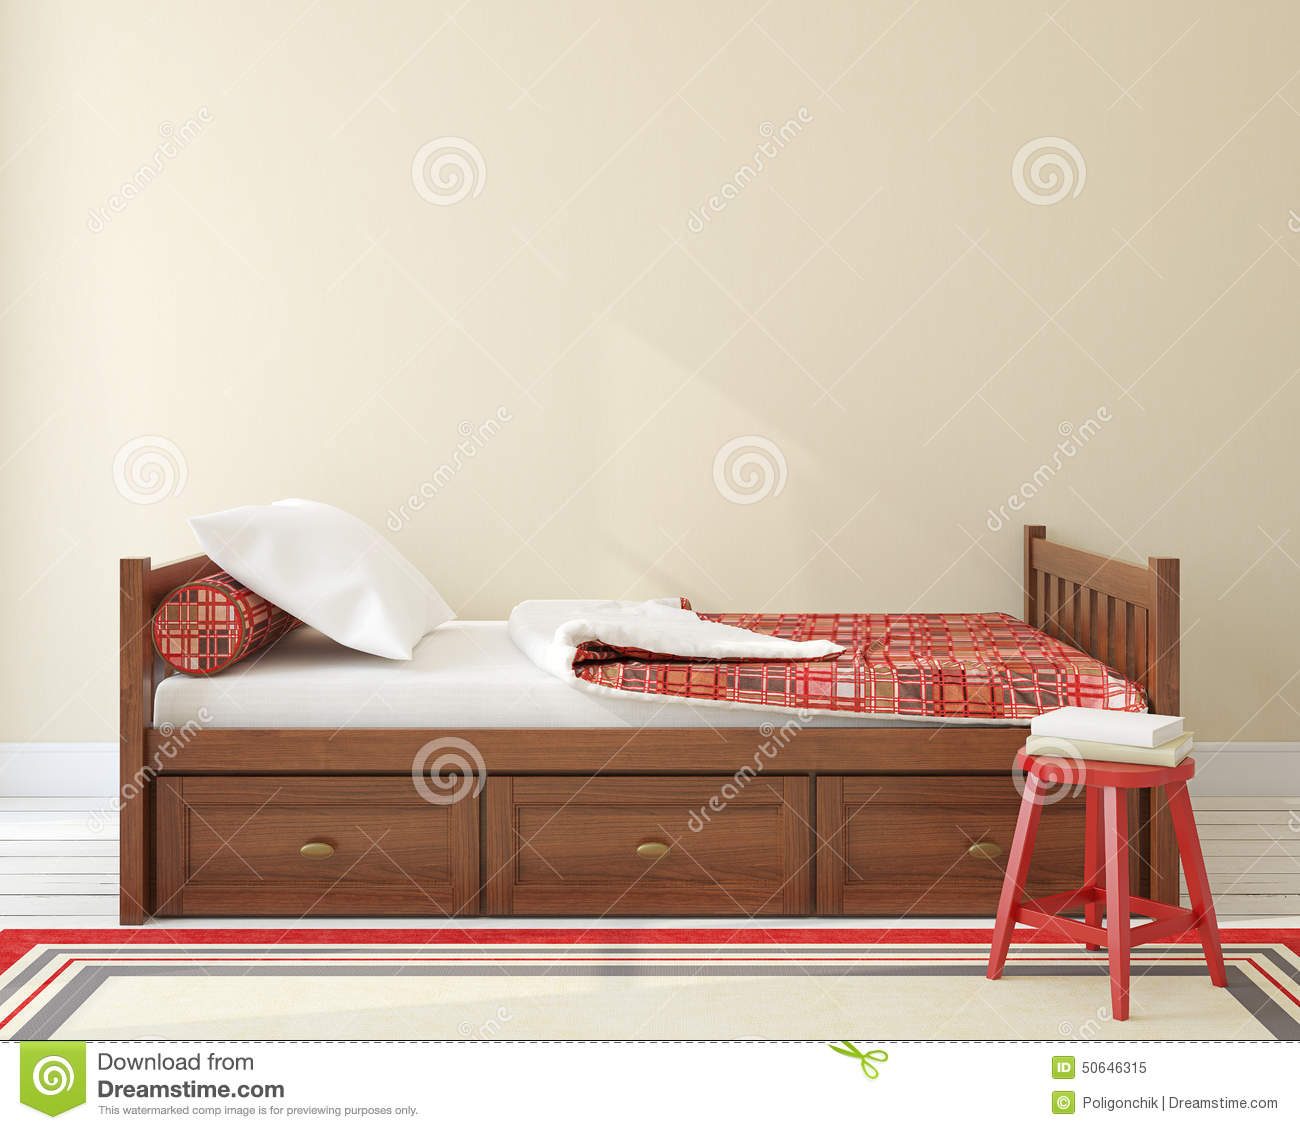 chambre coucher pour l 39 enfant illustration stock image 50646315. Black Bedroom Furniture Sets. Home Design Ideas